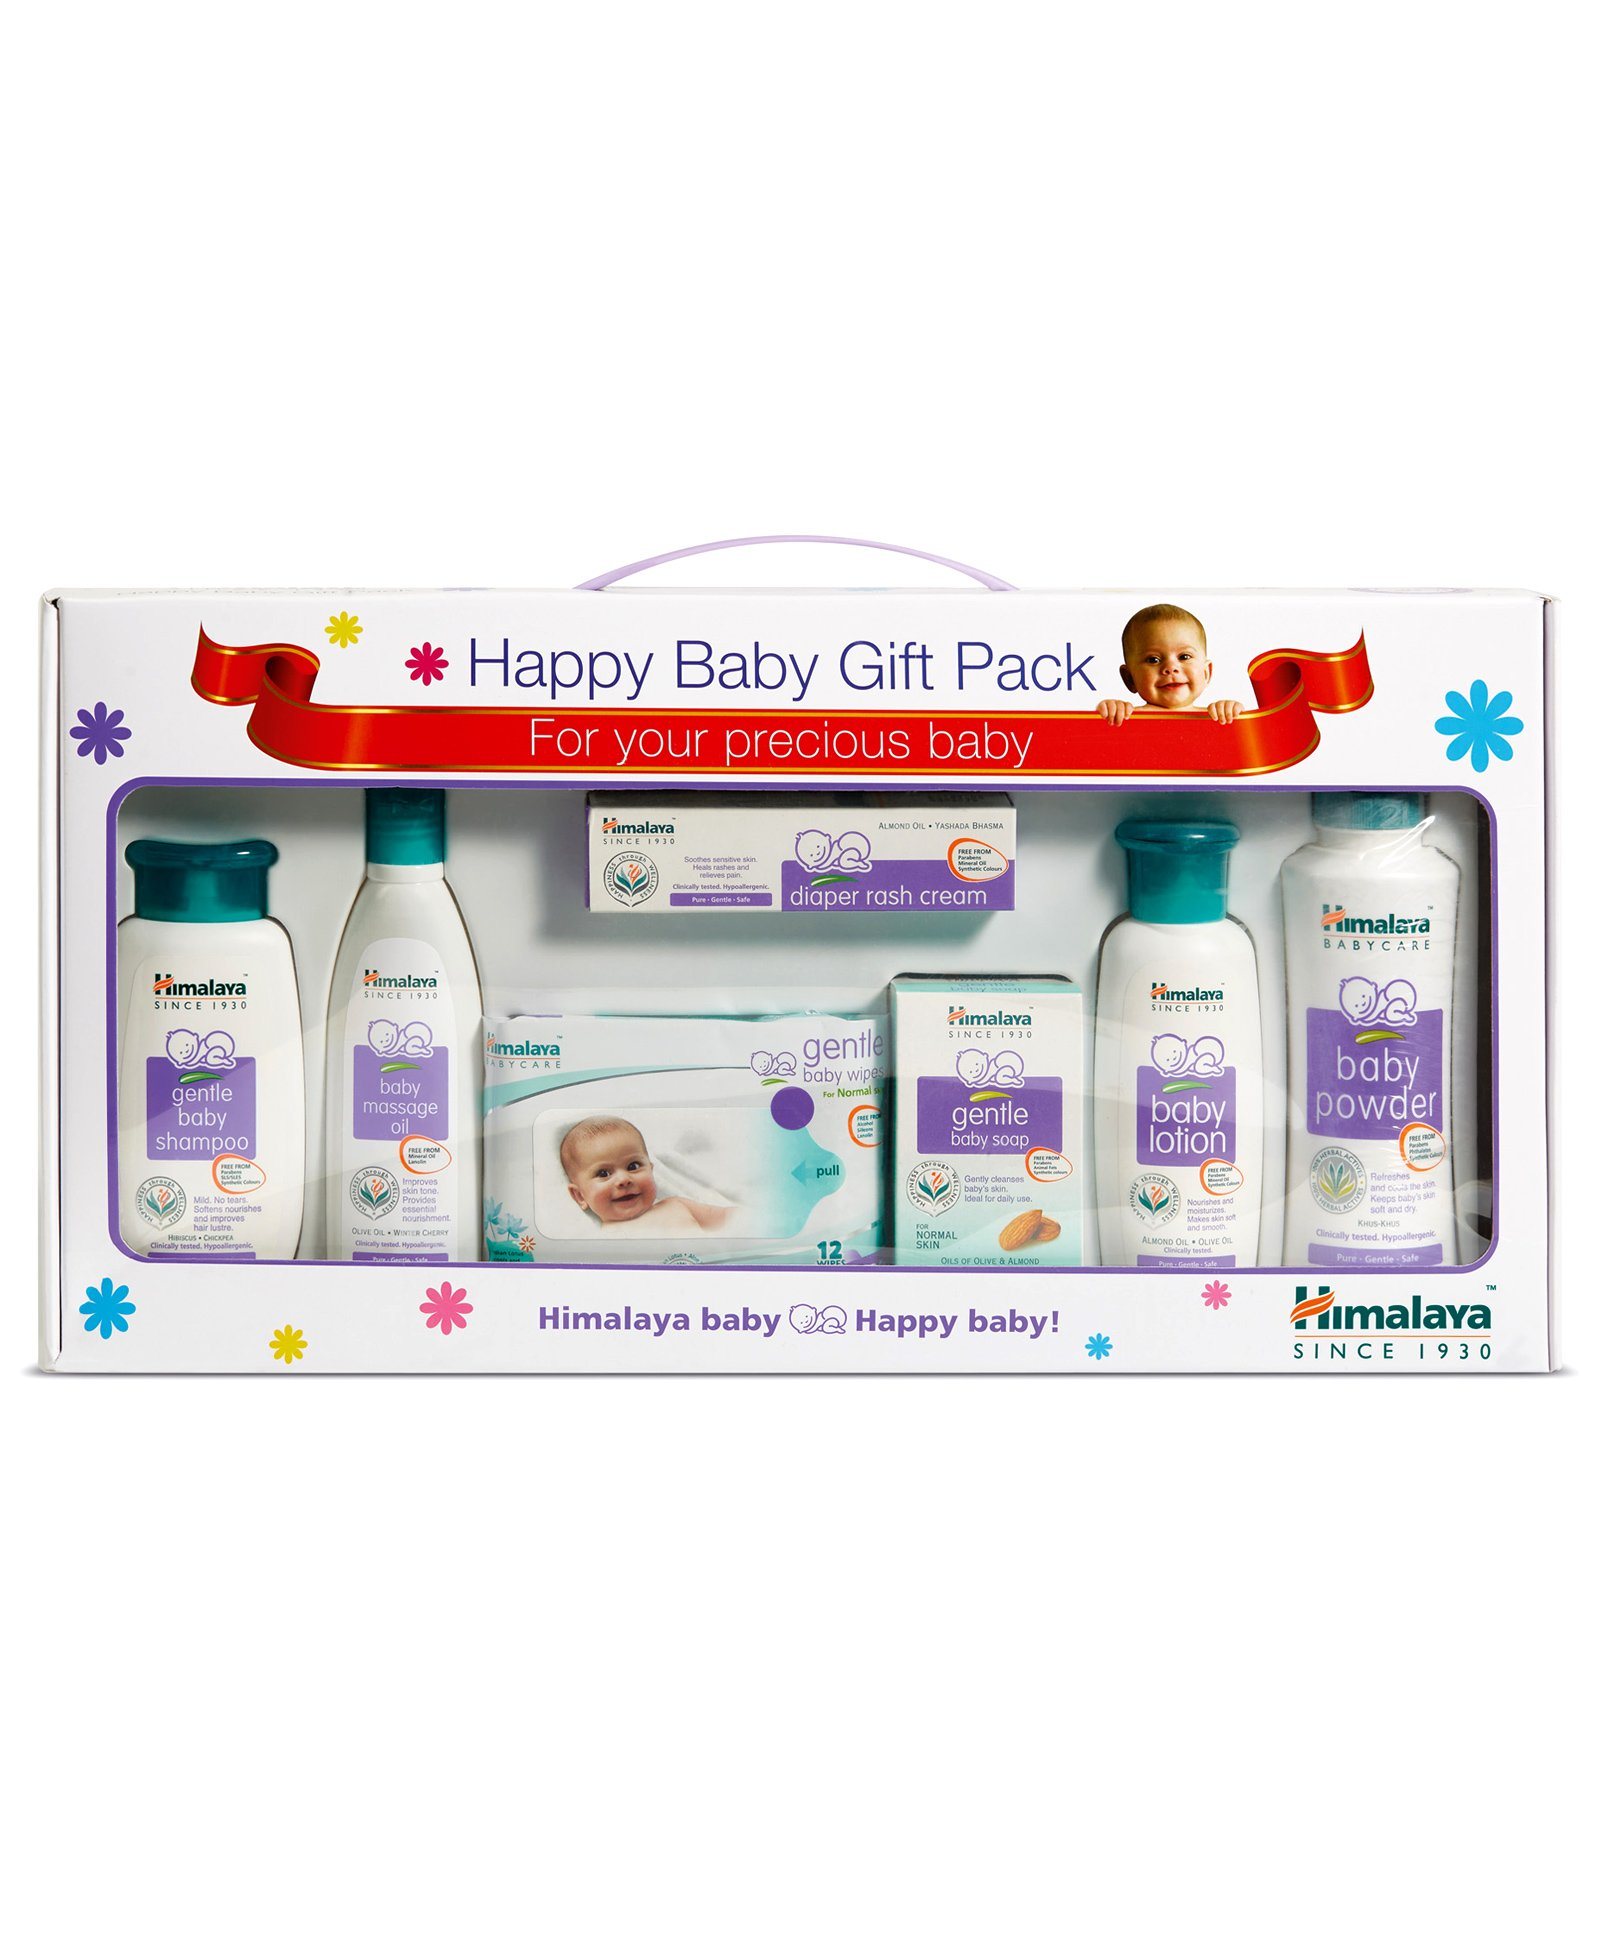 6b9e3dfe9 Himalaya Herbal Babycare Gift Pack Set Of 7 for Both (0-24 Months ...